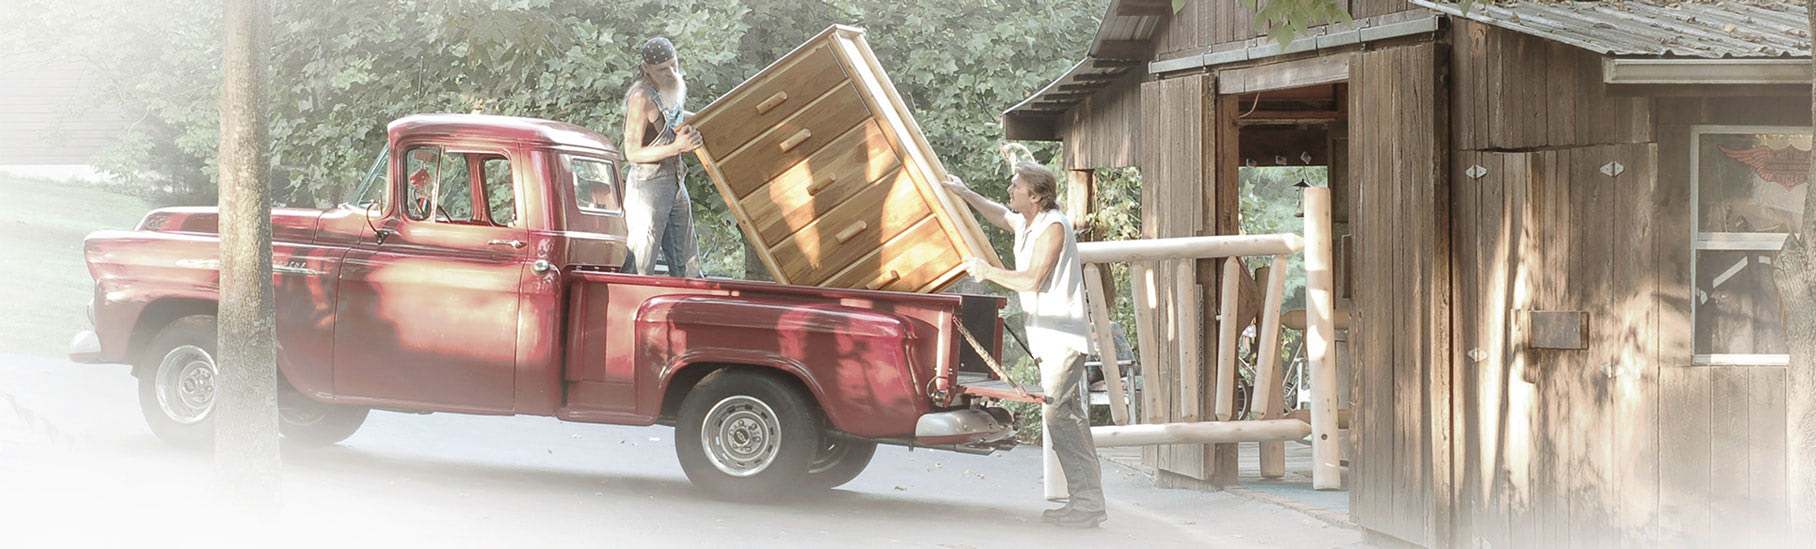 loading a vintage red truck